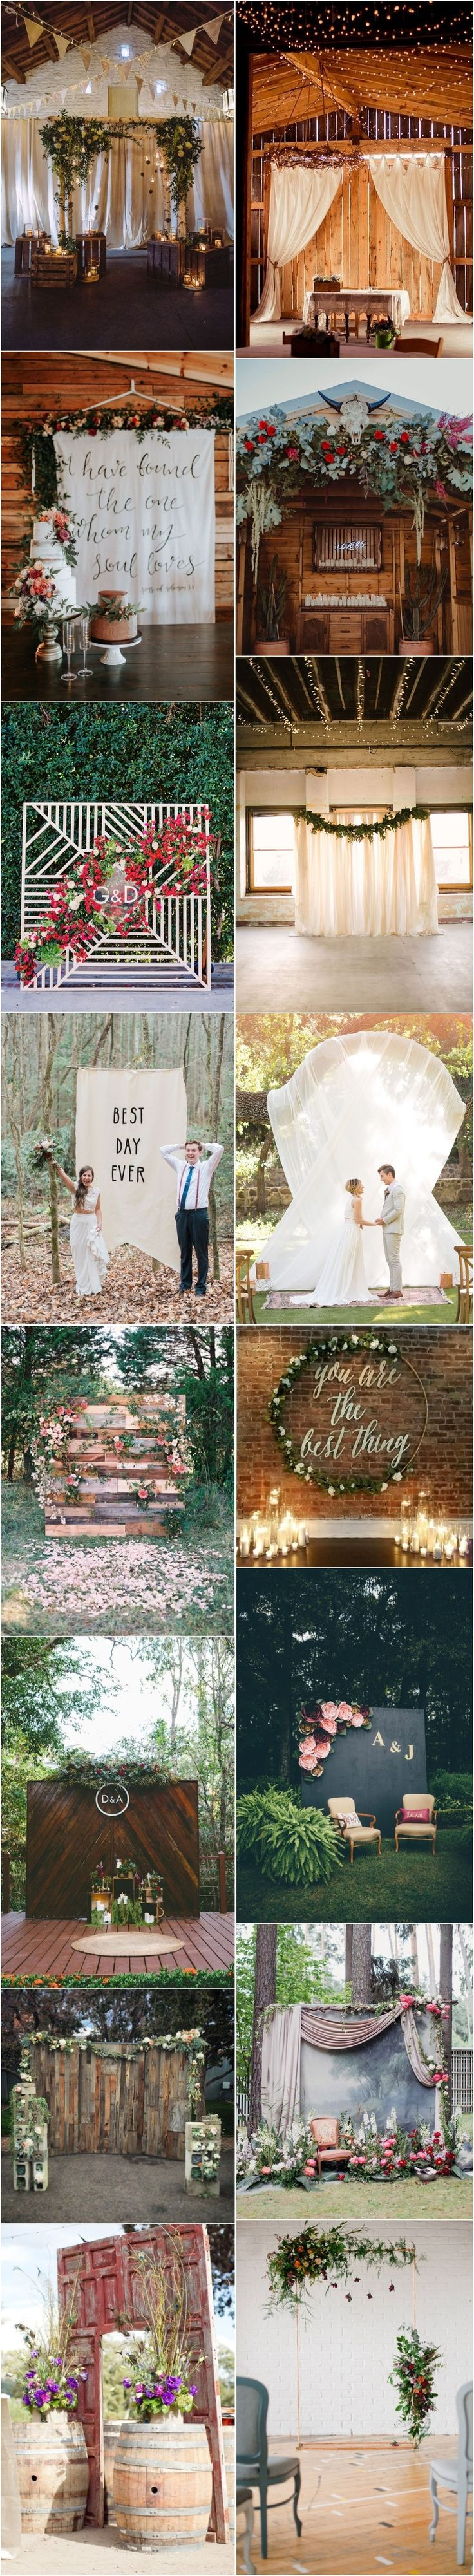 Best Wedding Backdrops Images On Pinterest Marriage